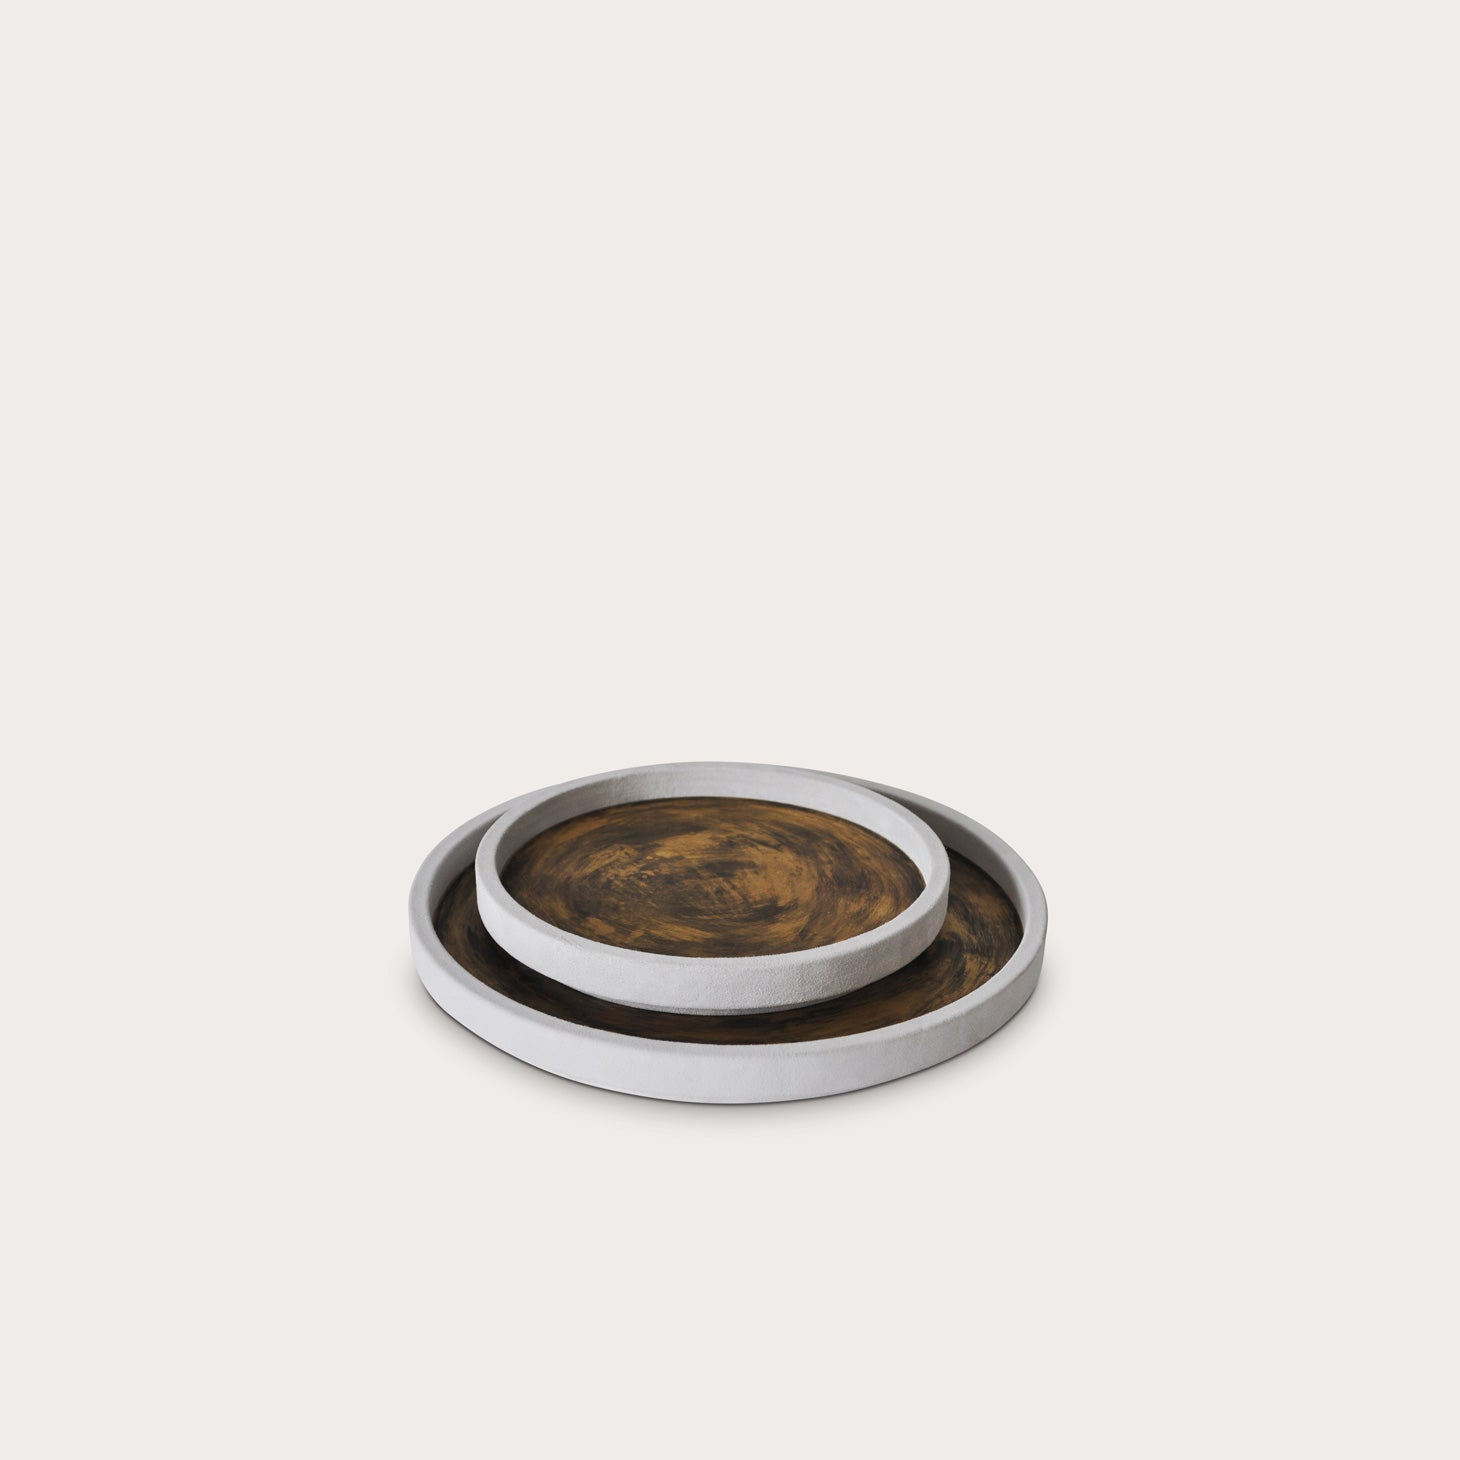 Circle Tray Decorative Objects Michael Verheyden Designer Furniture Sku: 554-100-10494